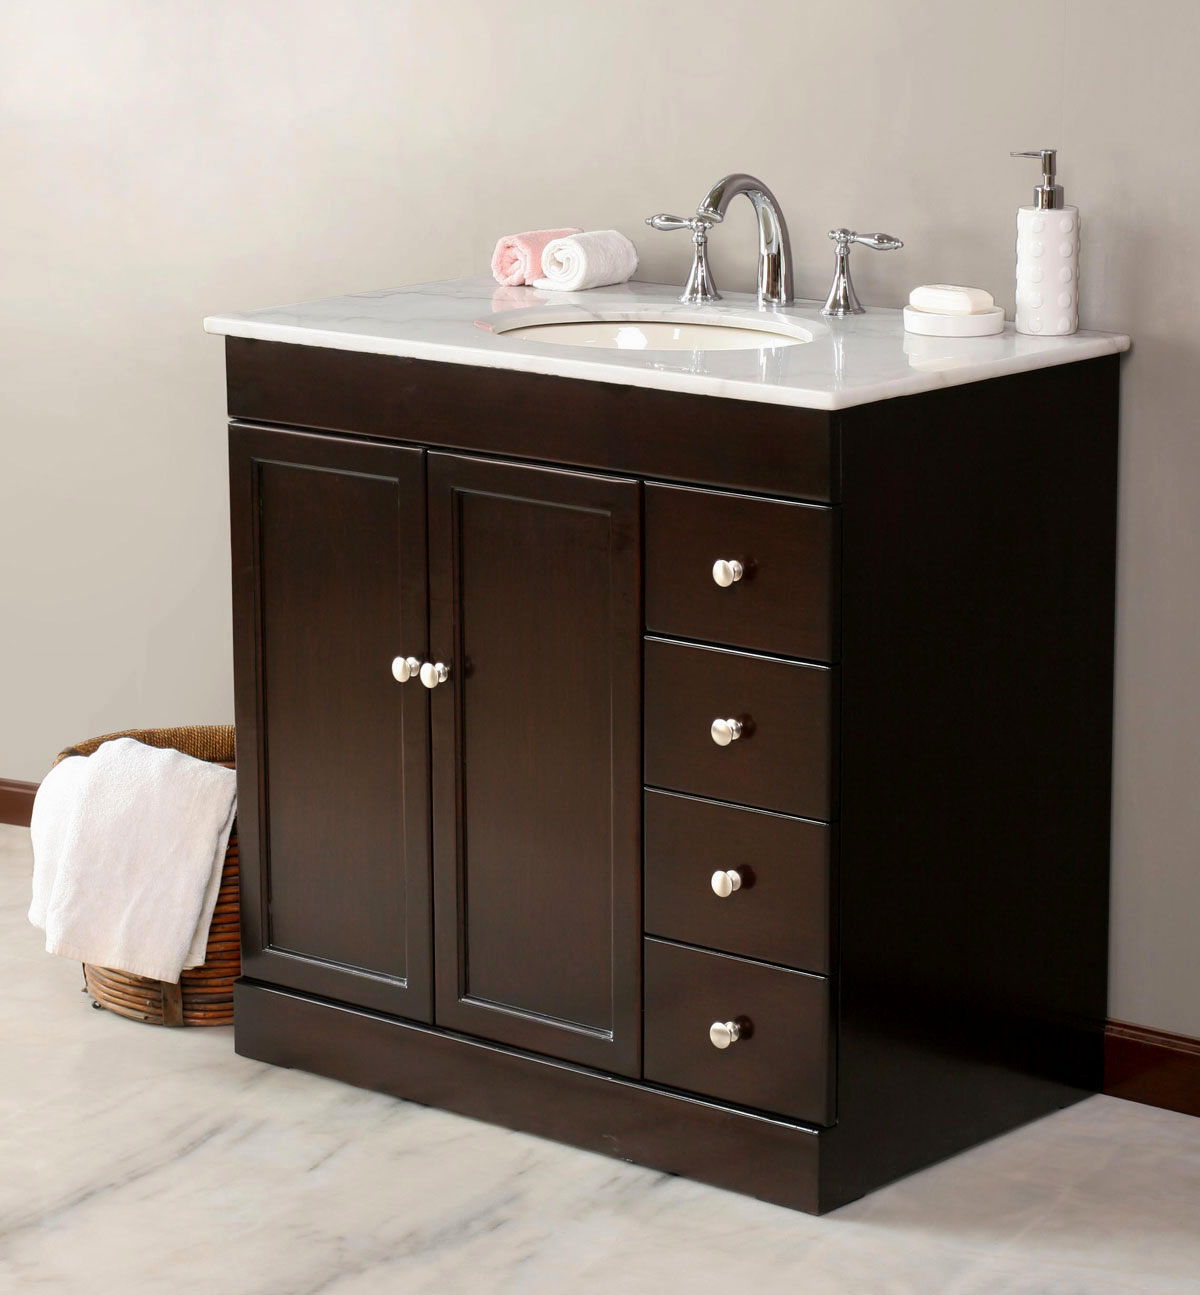 amazing bathroom vanity 36 inch design-Top Bathroom Vanity 36 Inch Gallery